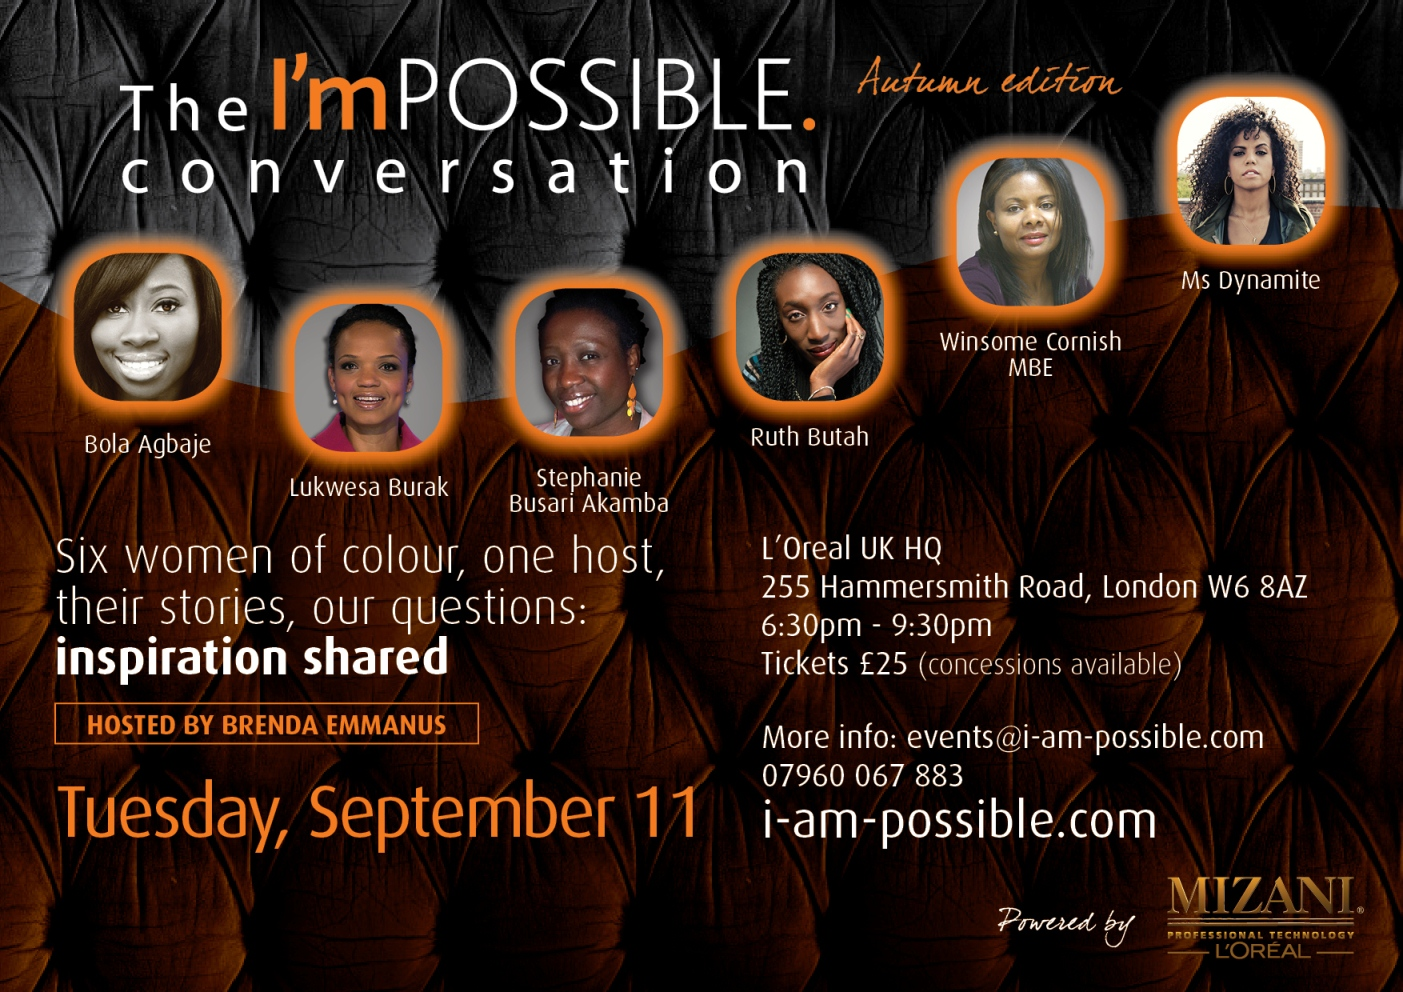 The I'mPOSSIBLE conversation, autumn edition, Sept. 11